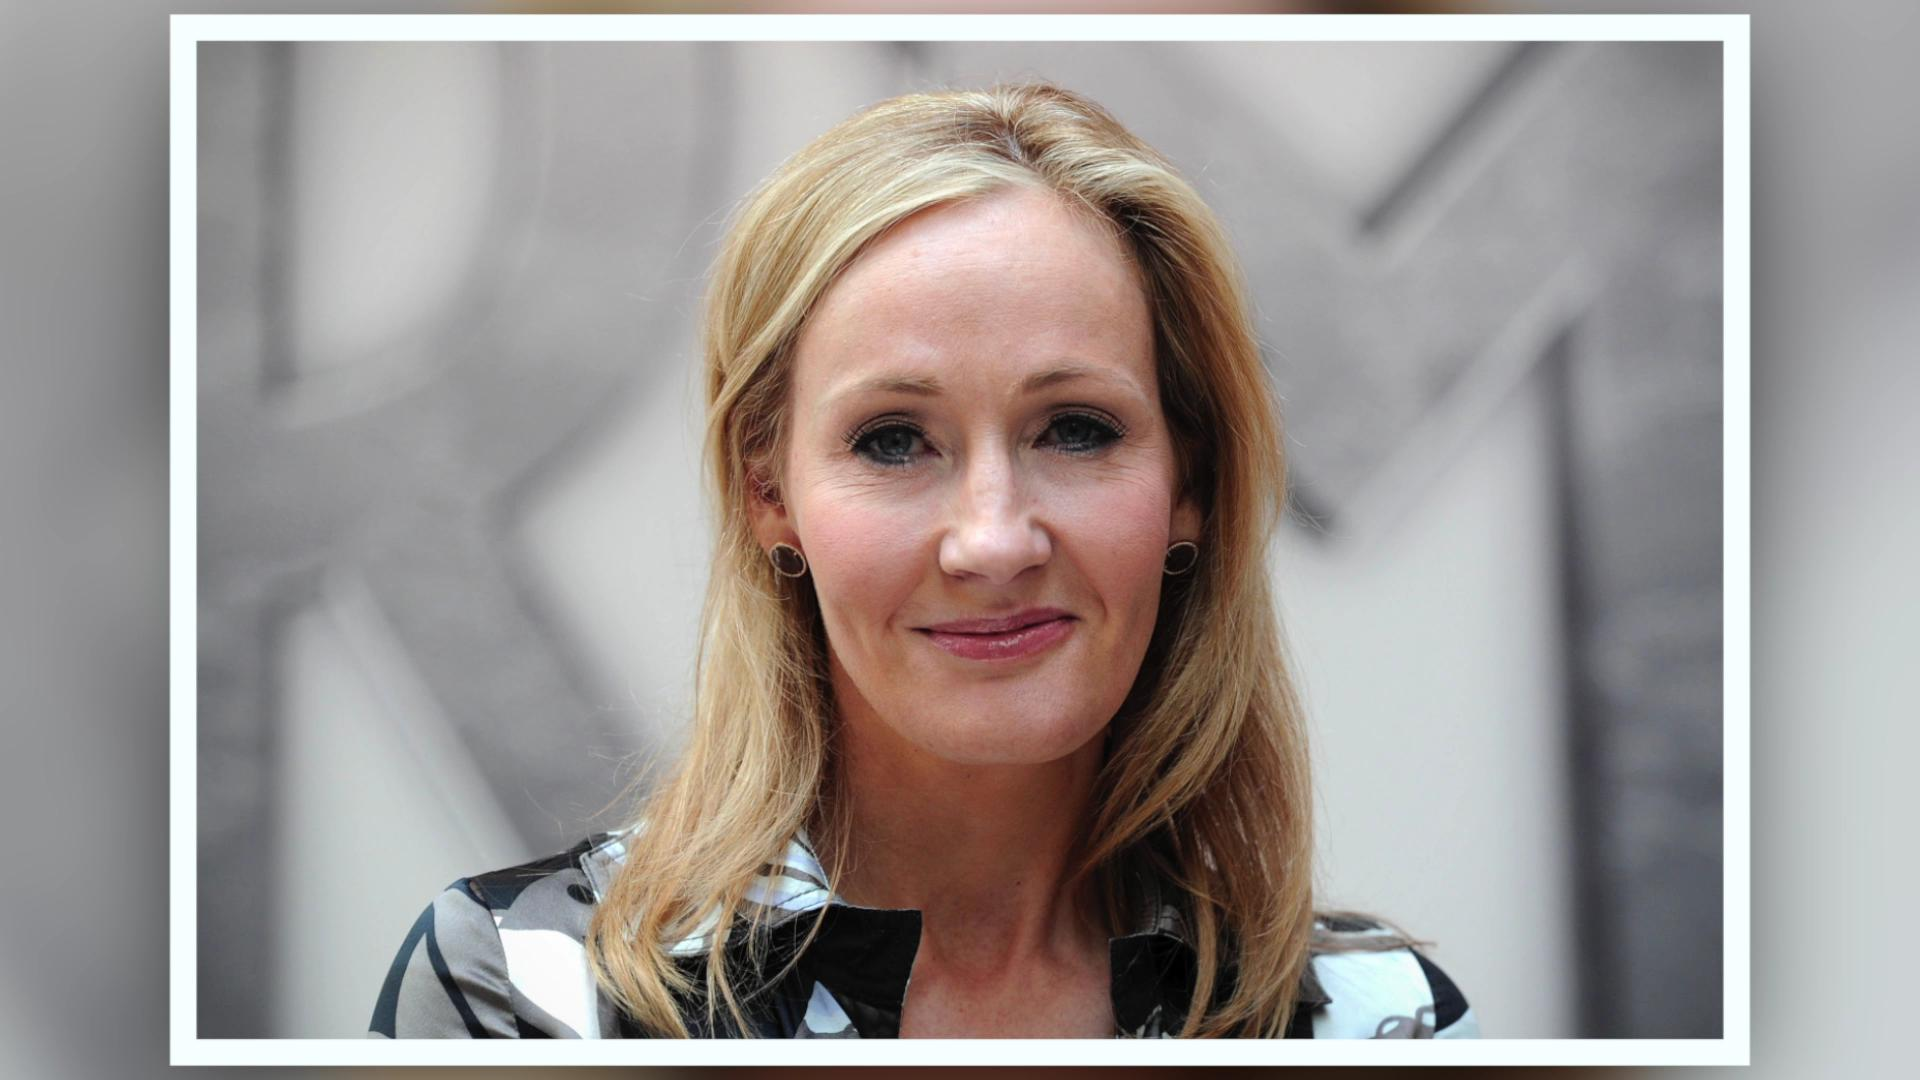 J.K. Rowling Tweets to Fan Who Wanted to 'Give Up'